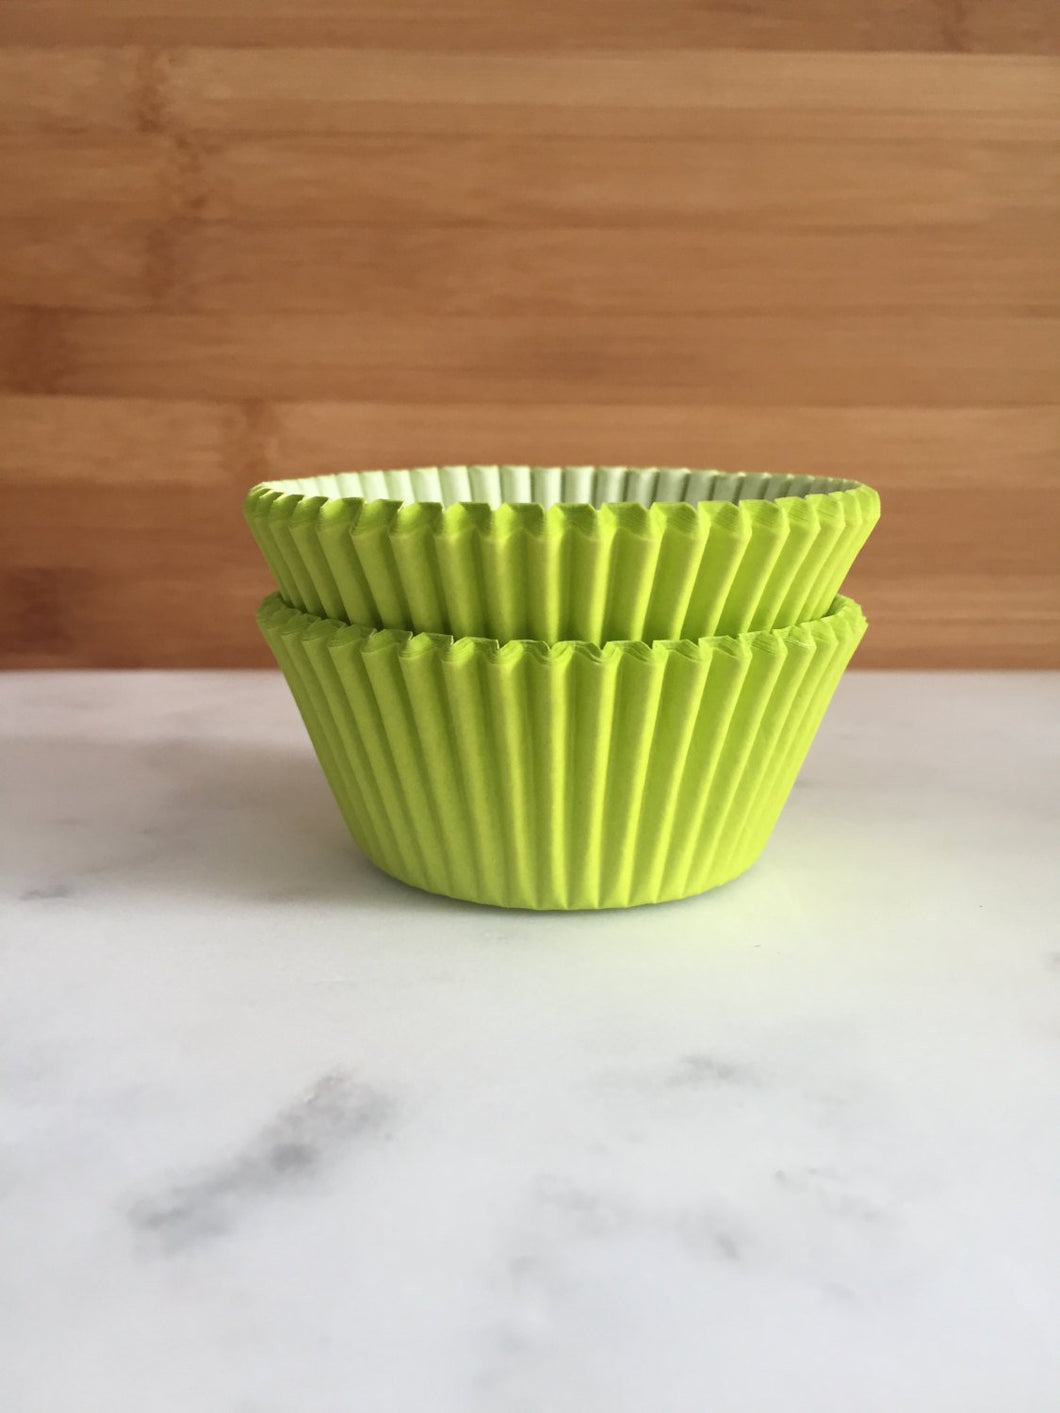 Neon Green Cupcake Liners, Standard Sized, Baking Cups (50)